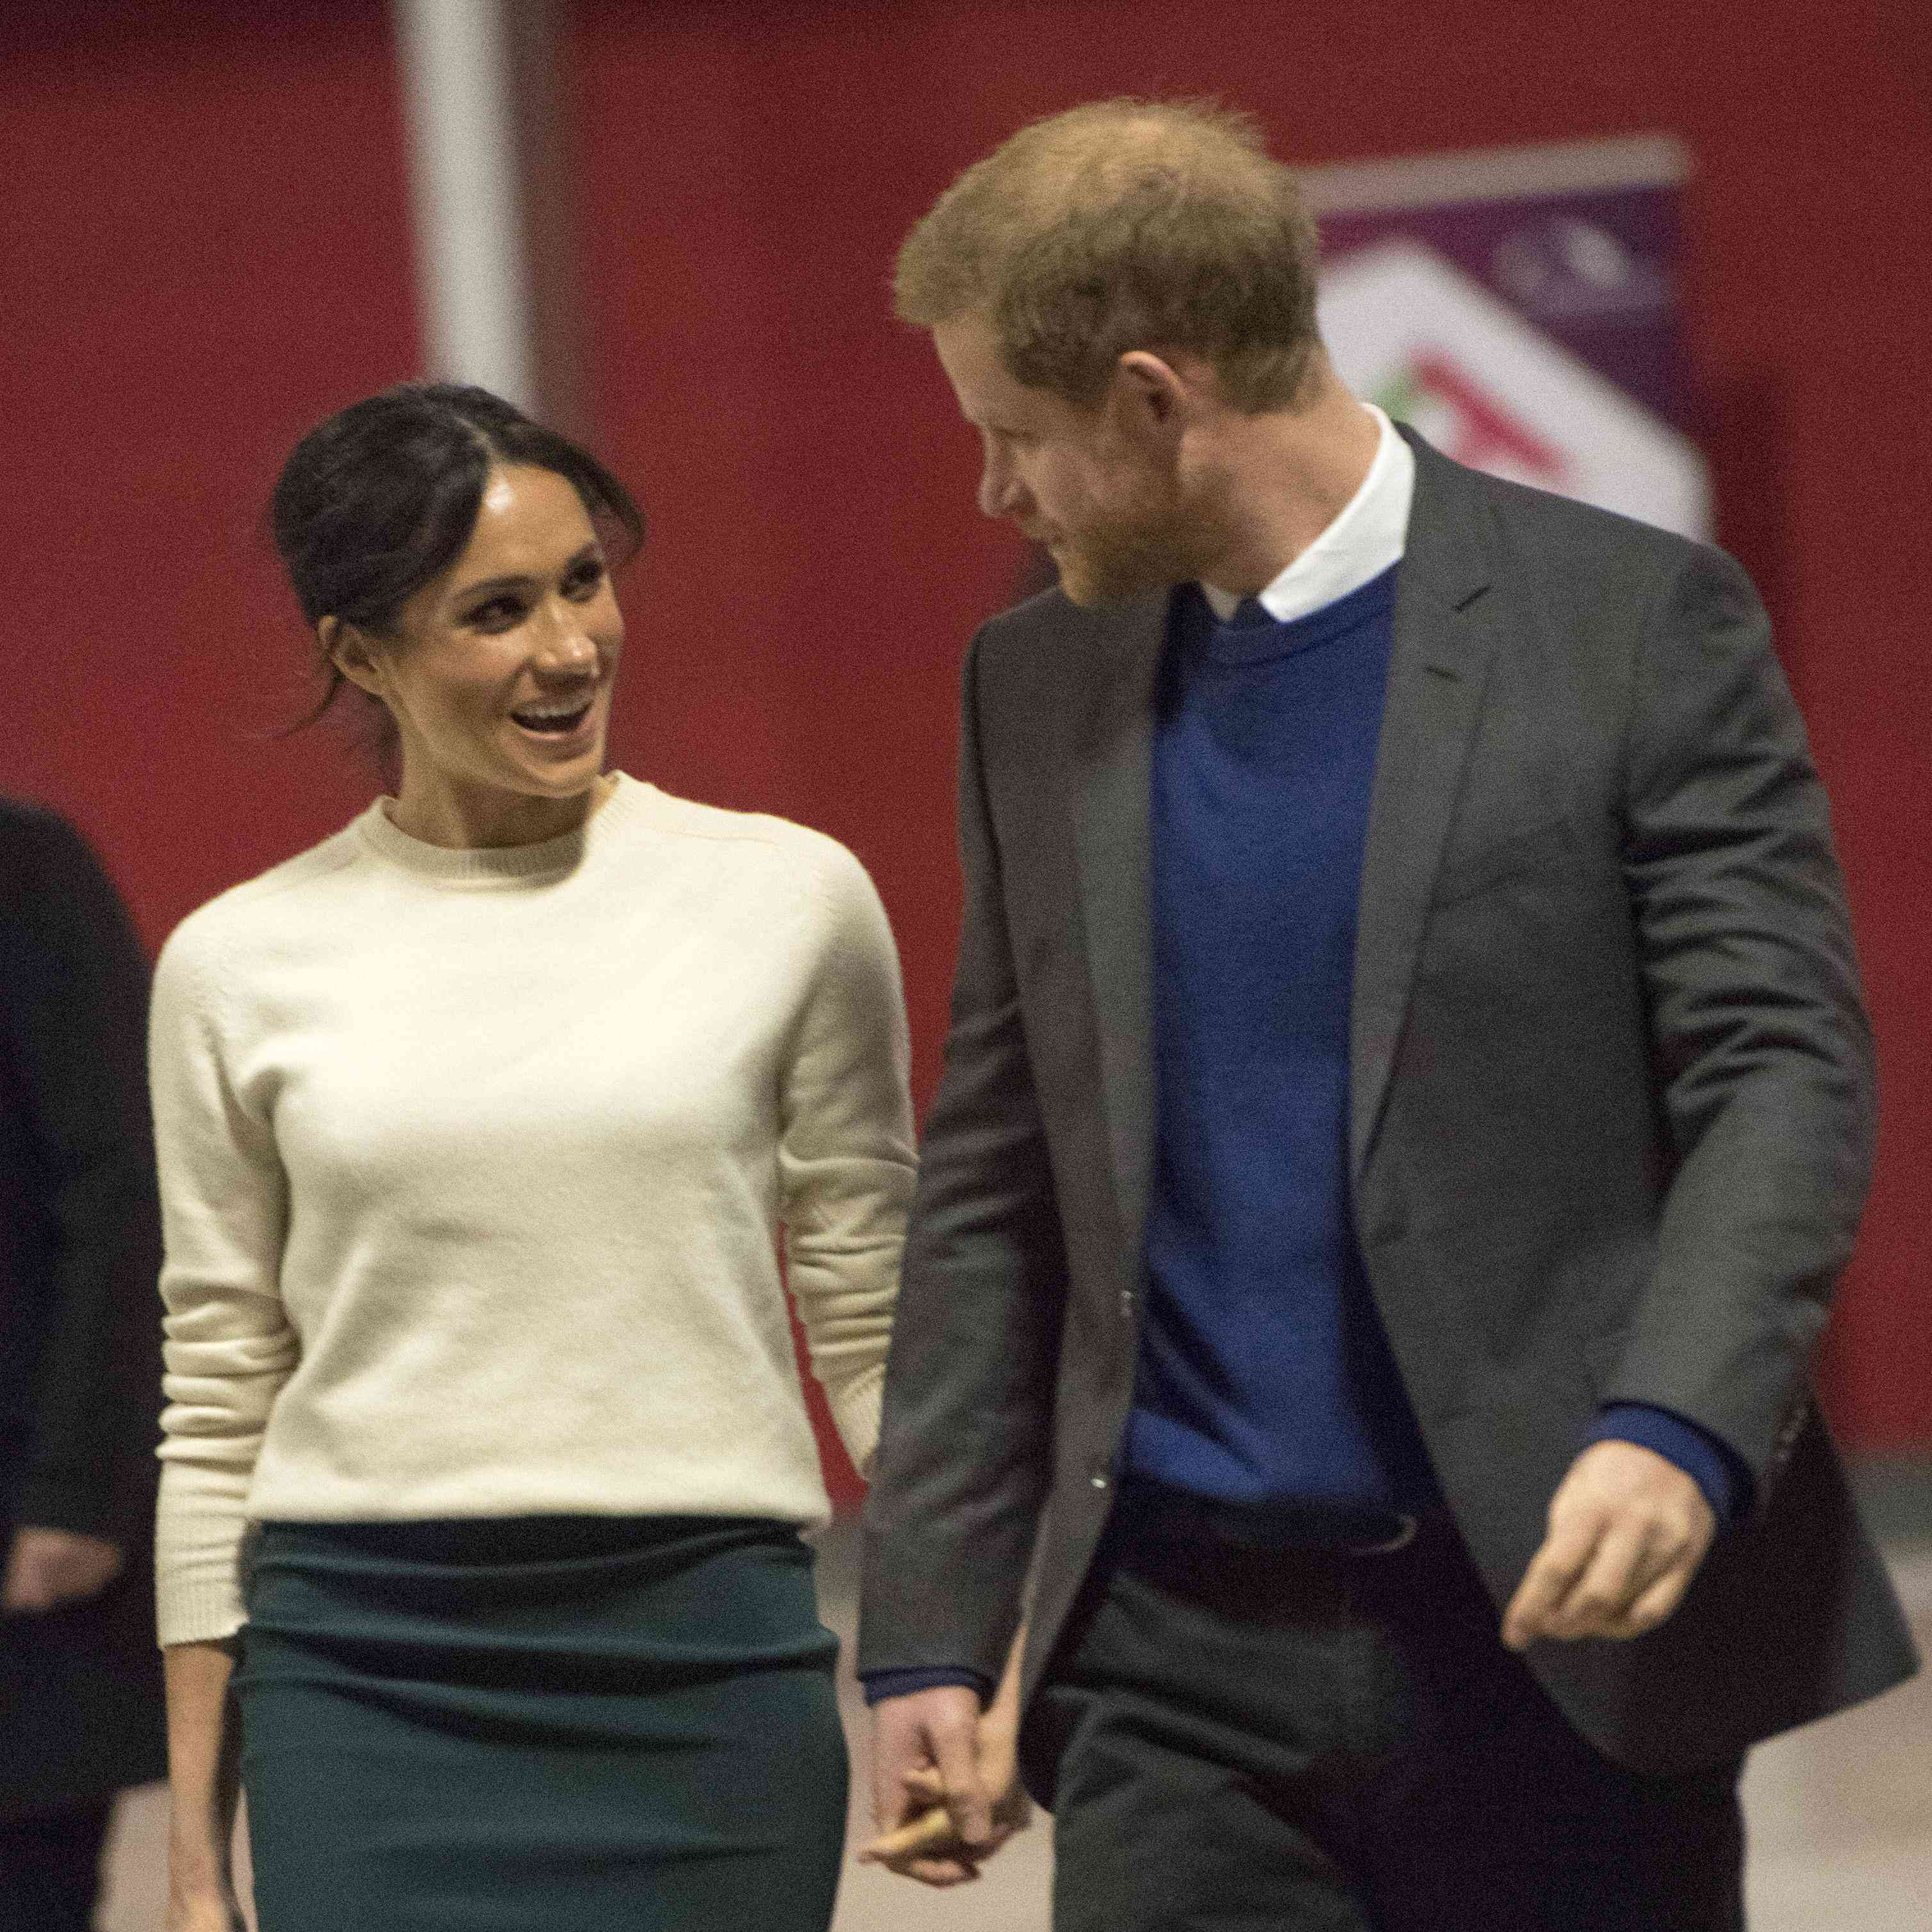 Meghan Markle And Prince Harry Are Low-Key Asking For